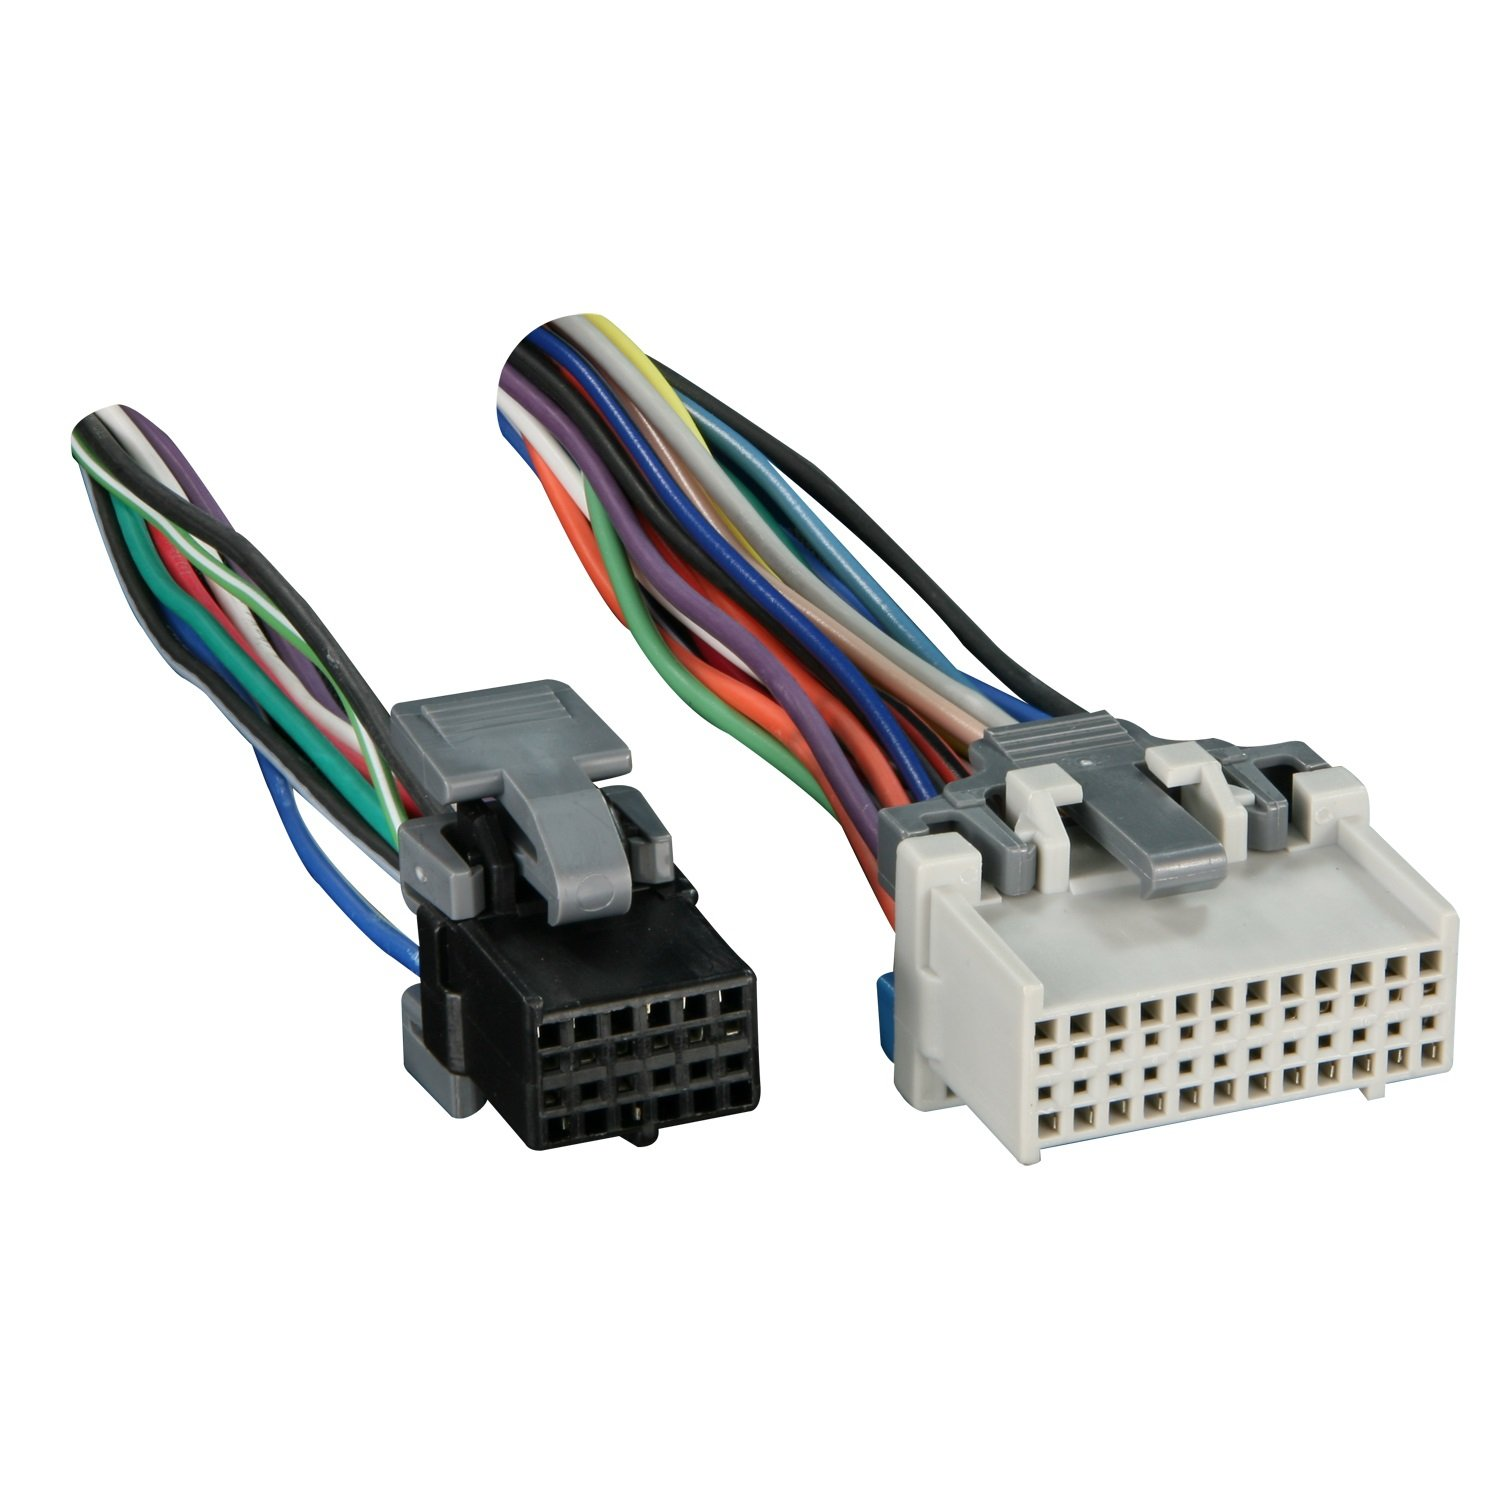 711log4bdML._SL1500_ amazon com metra turbowires 71 2003 1 wiring harness car electronics Wire Harness Grommet at gsmx.co